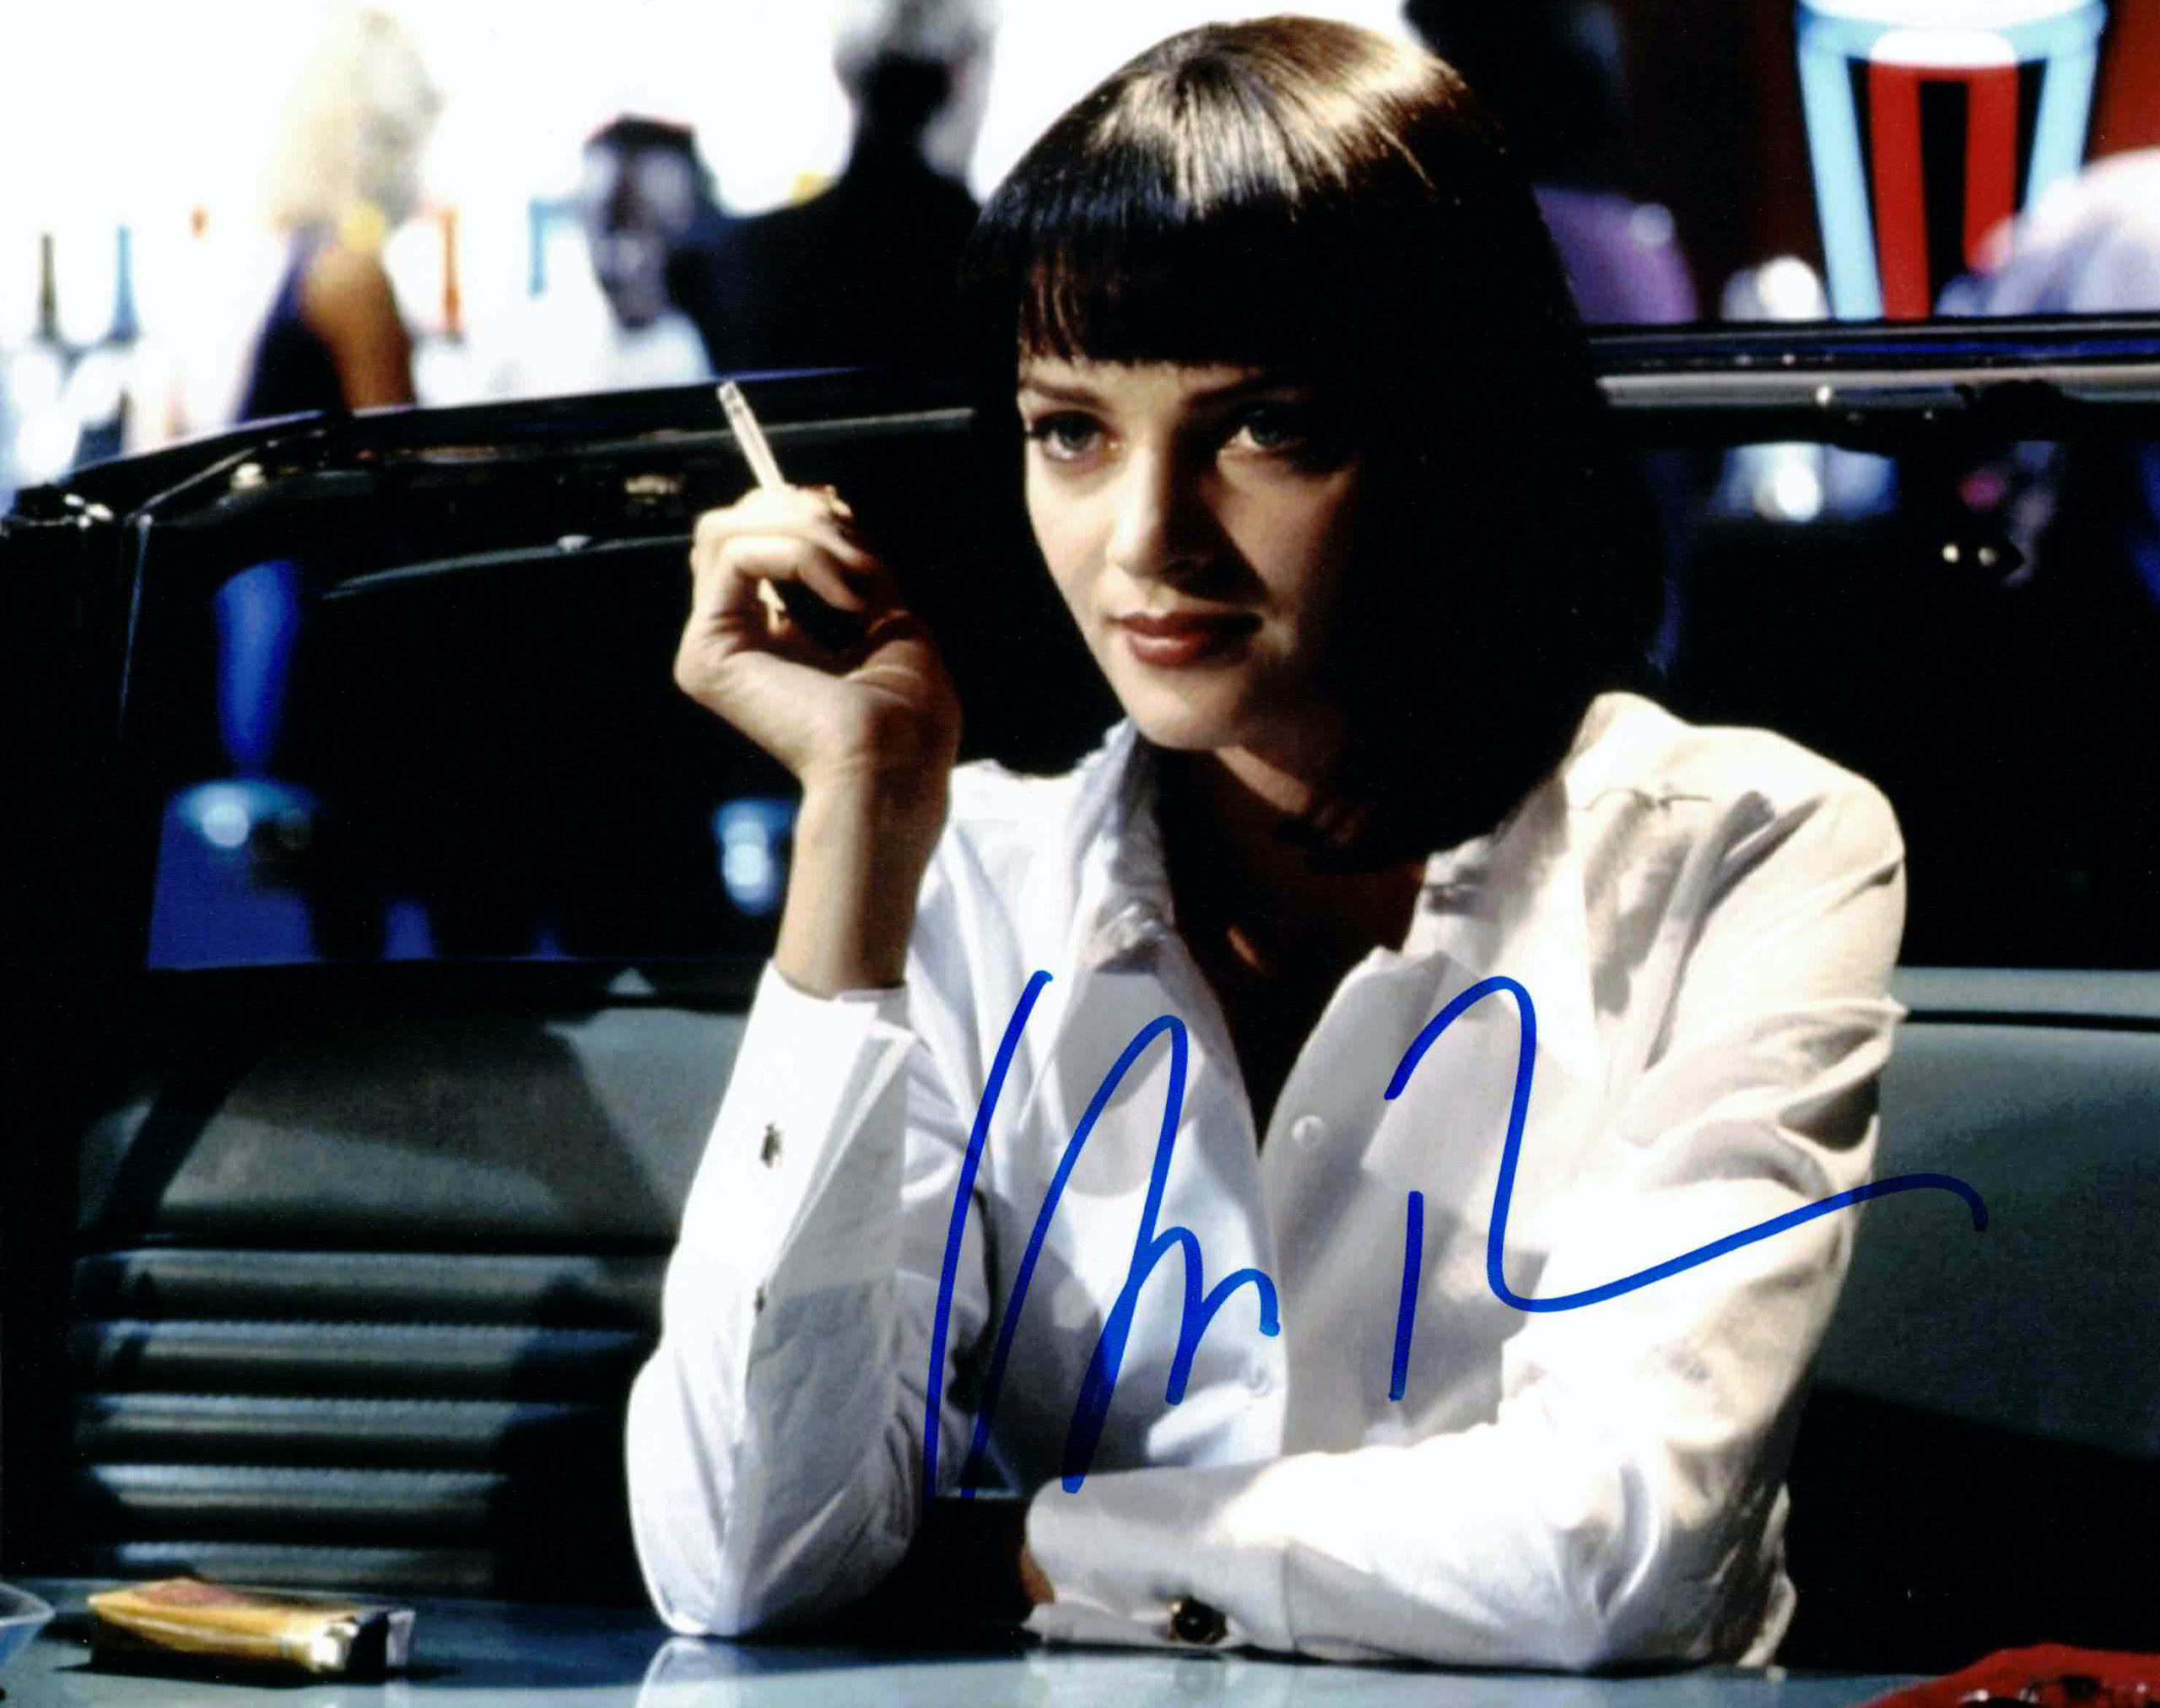 Uma Thurman / Pulp fiction - autogram